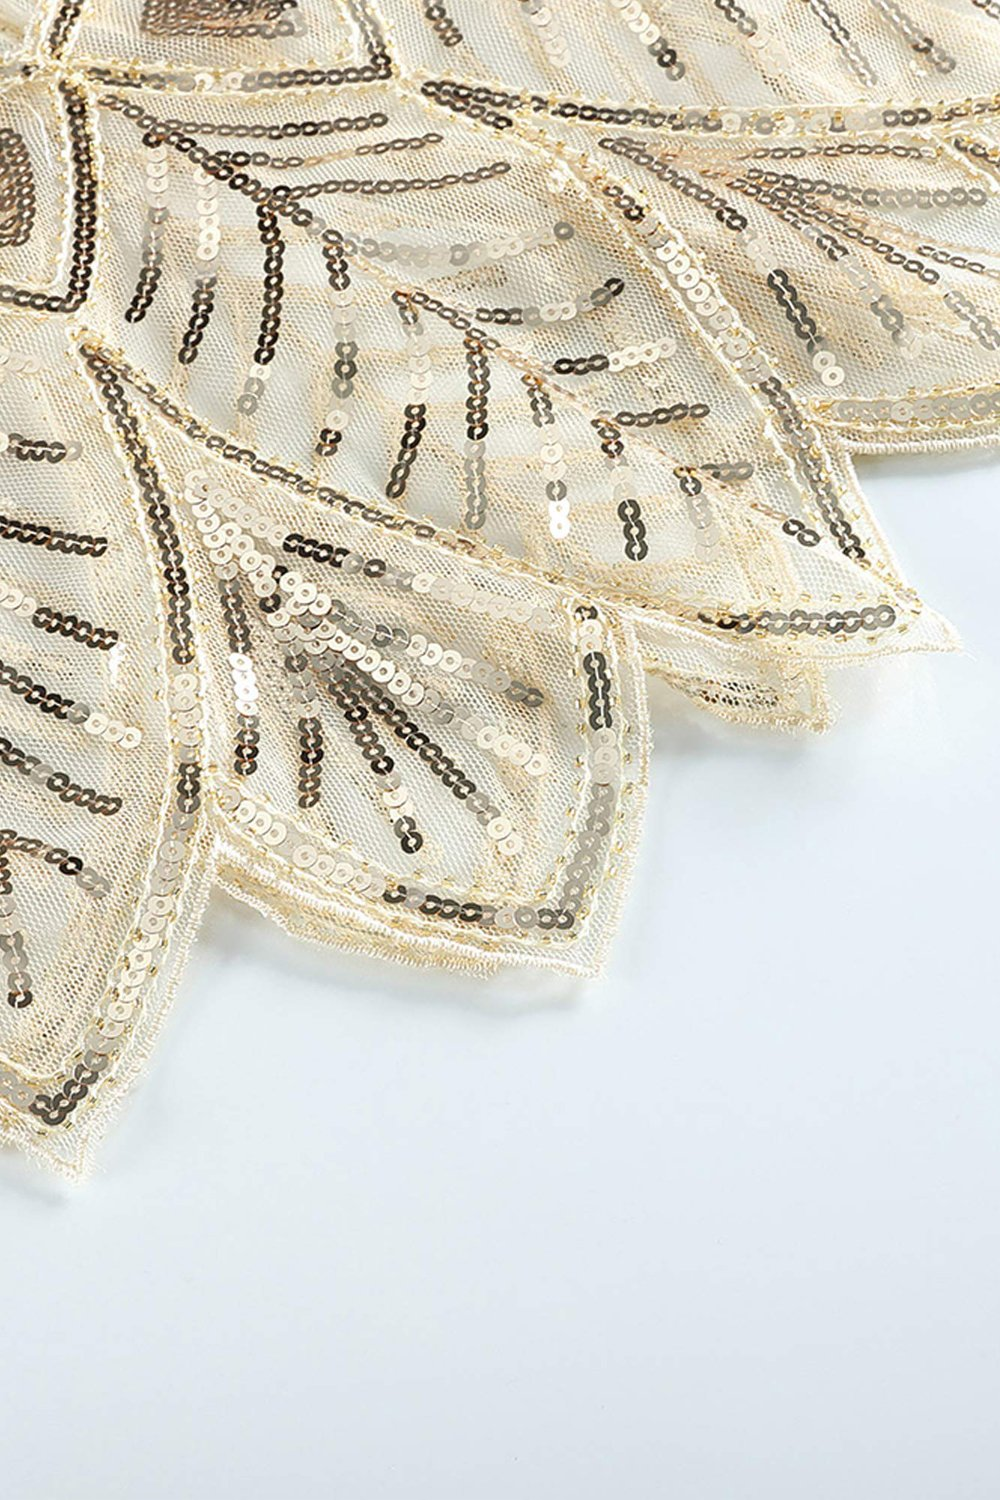 Ivory Sequin Glitter 1920s Cape